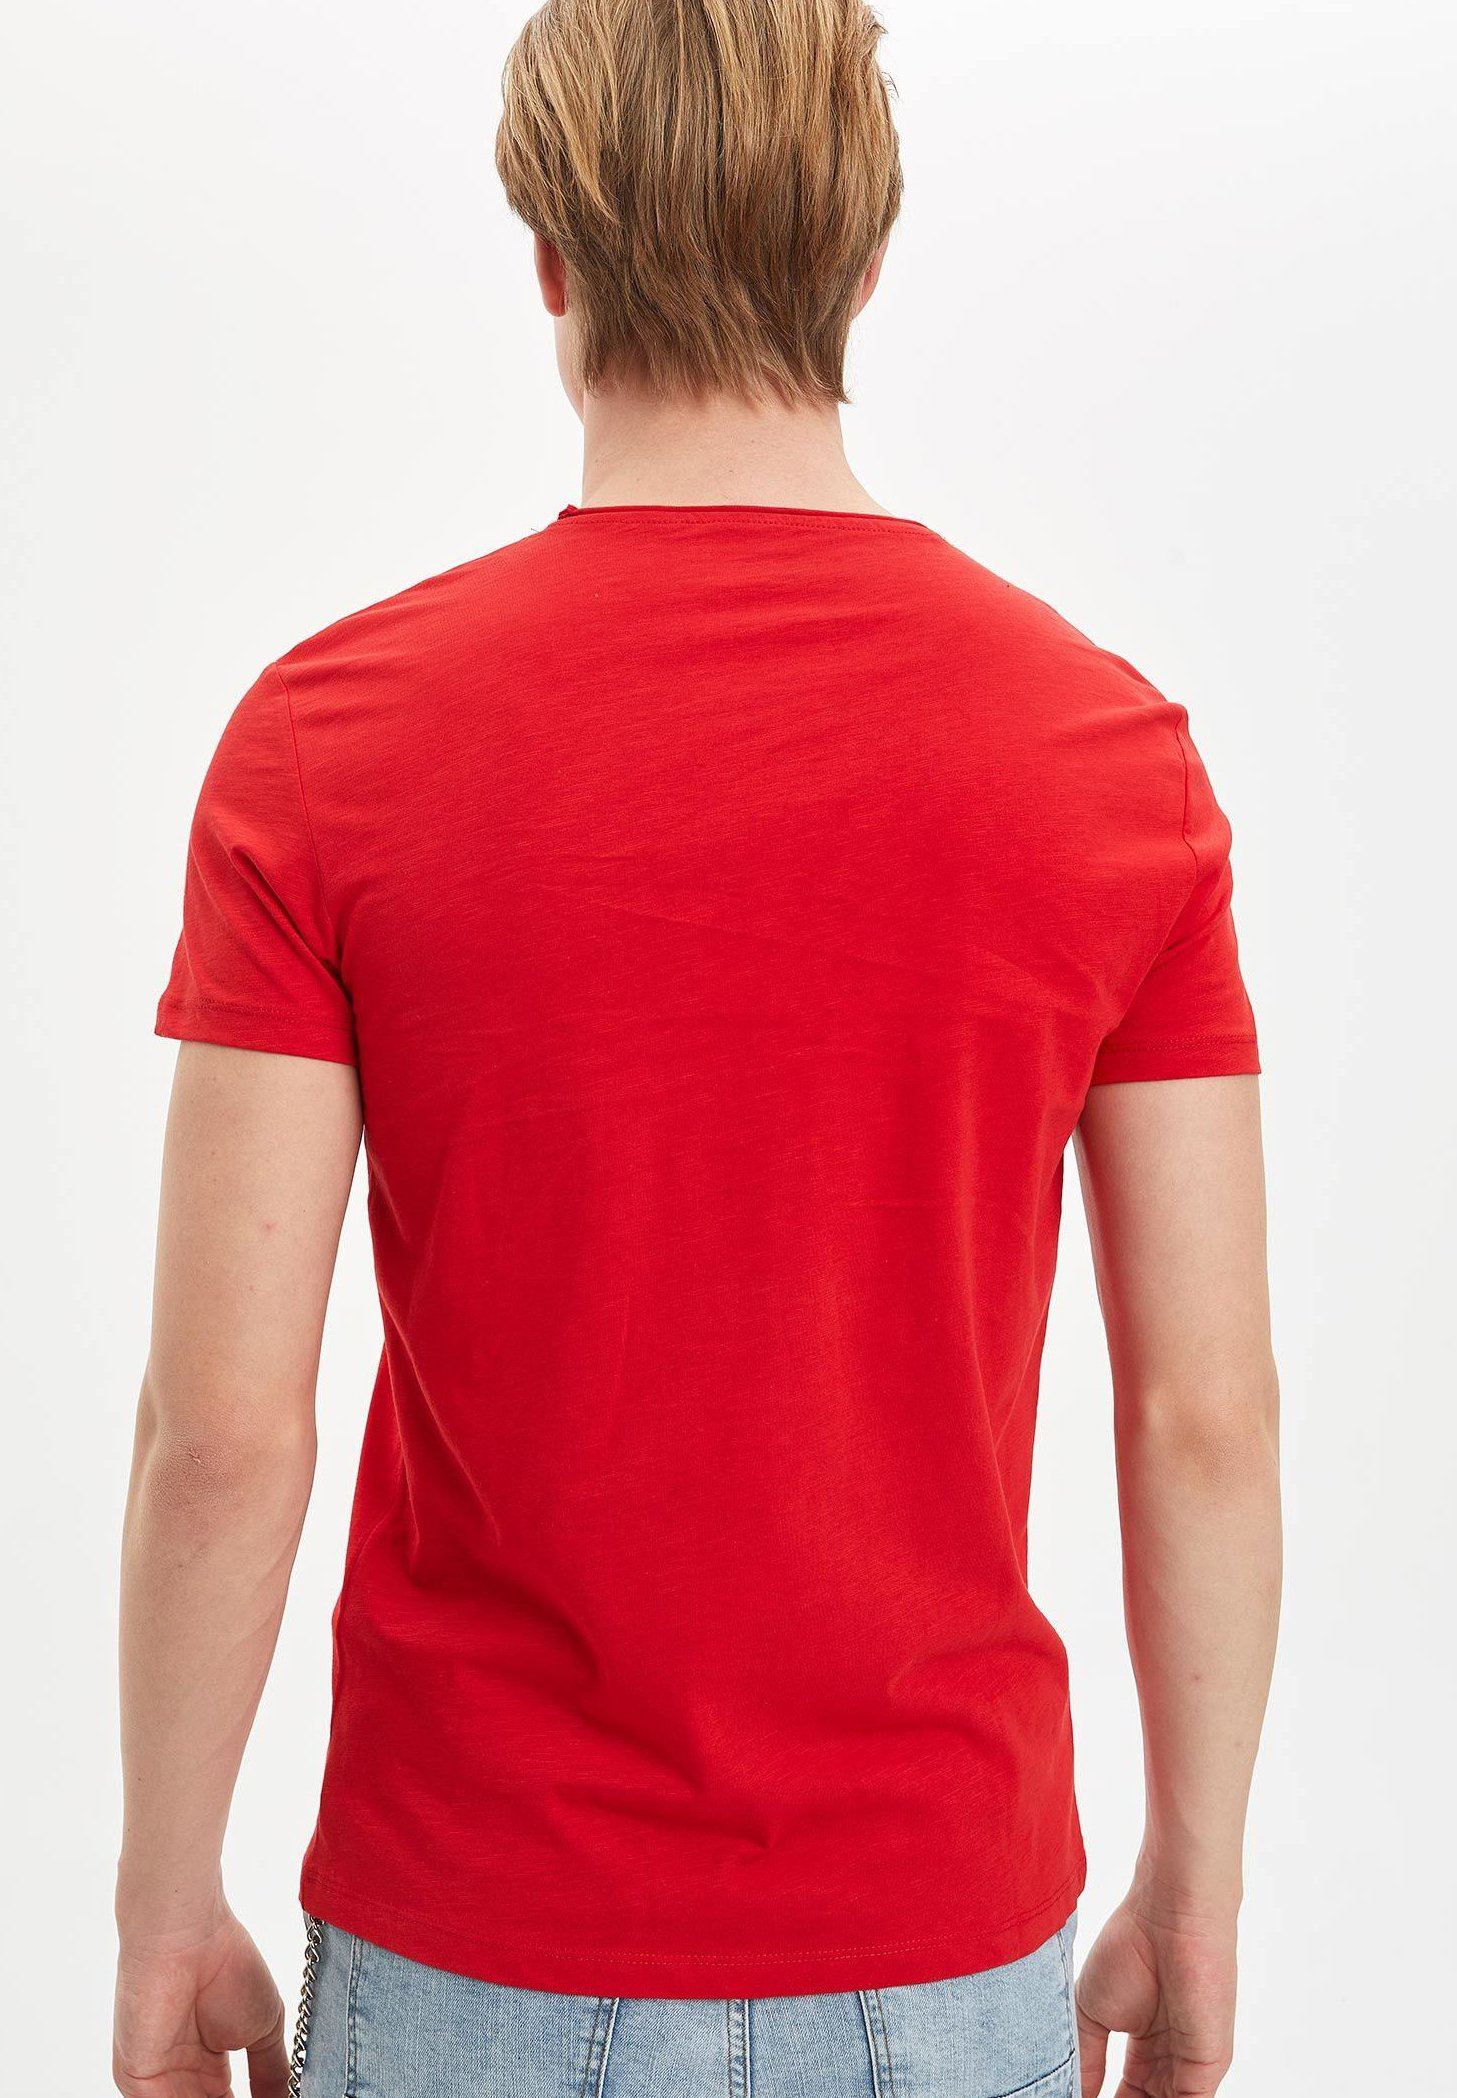 DeFacto Basic T-shirt - red Wvreo